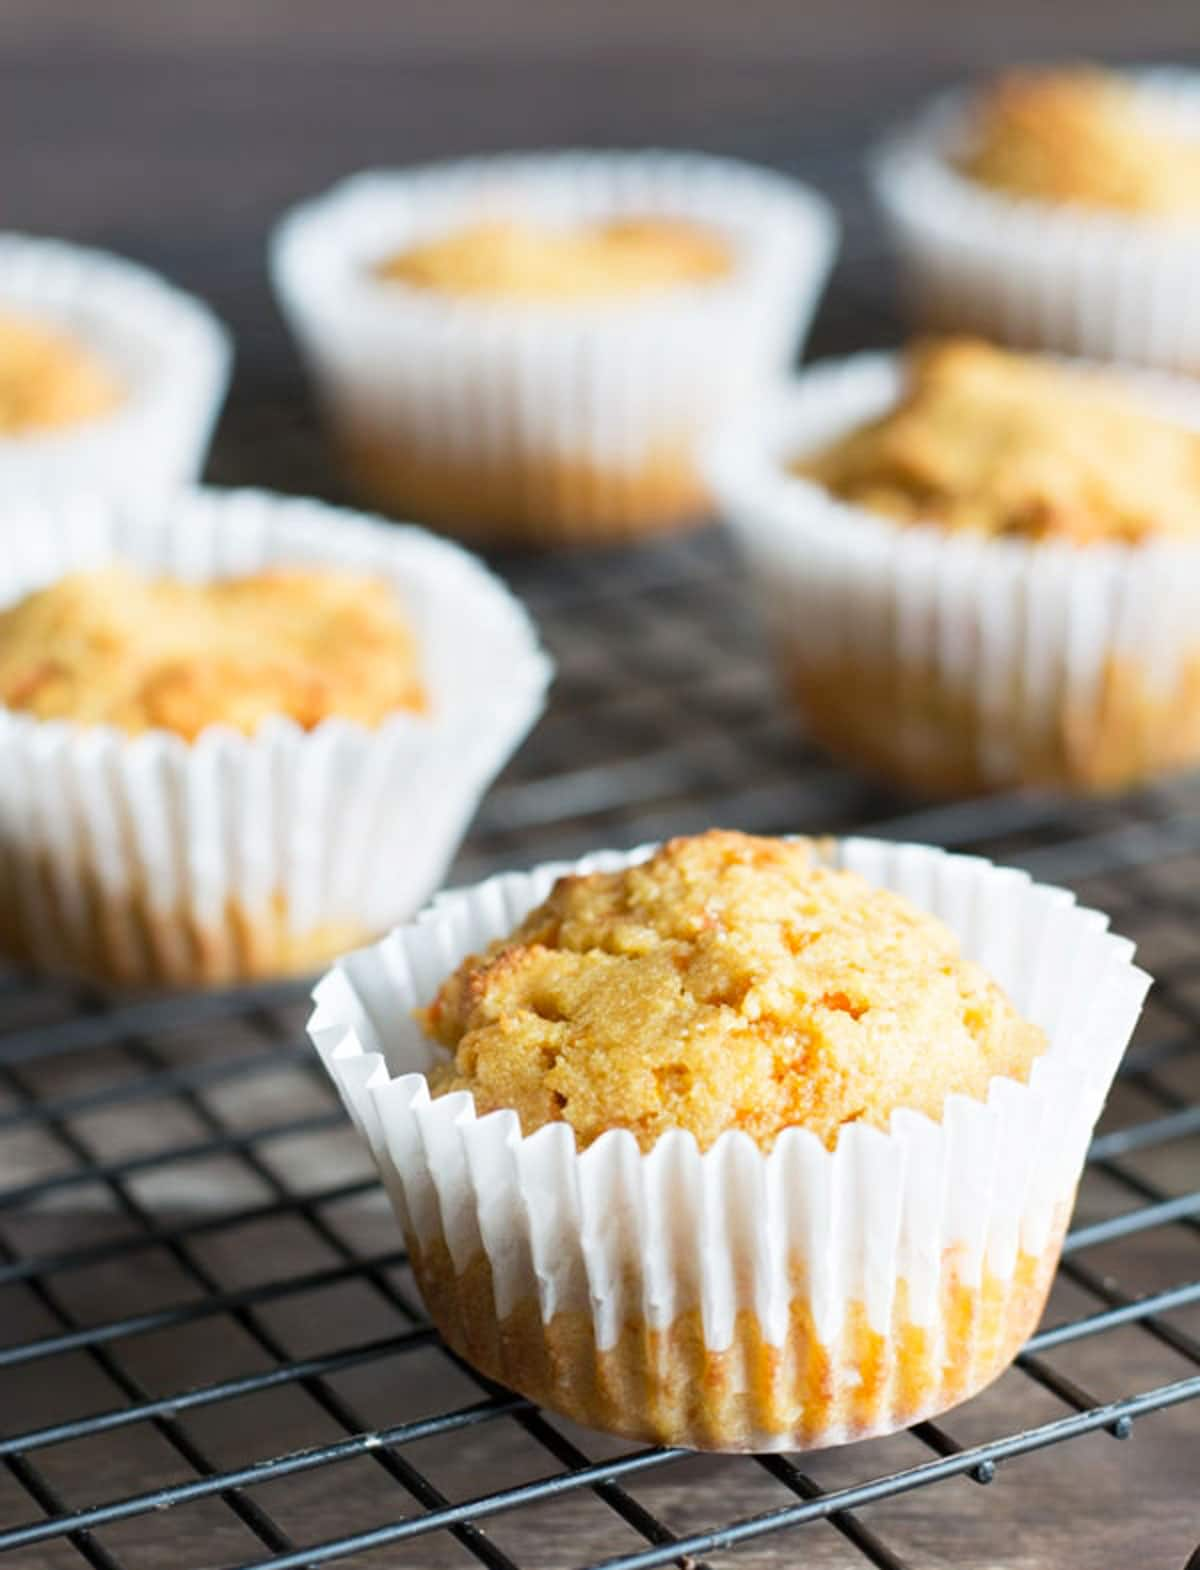 gluten free carrot muffins on a cooling rack